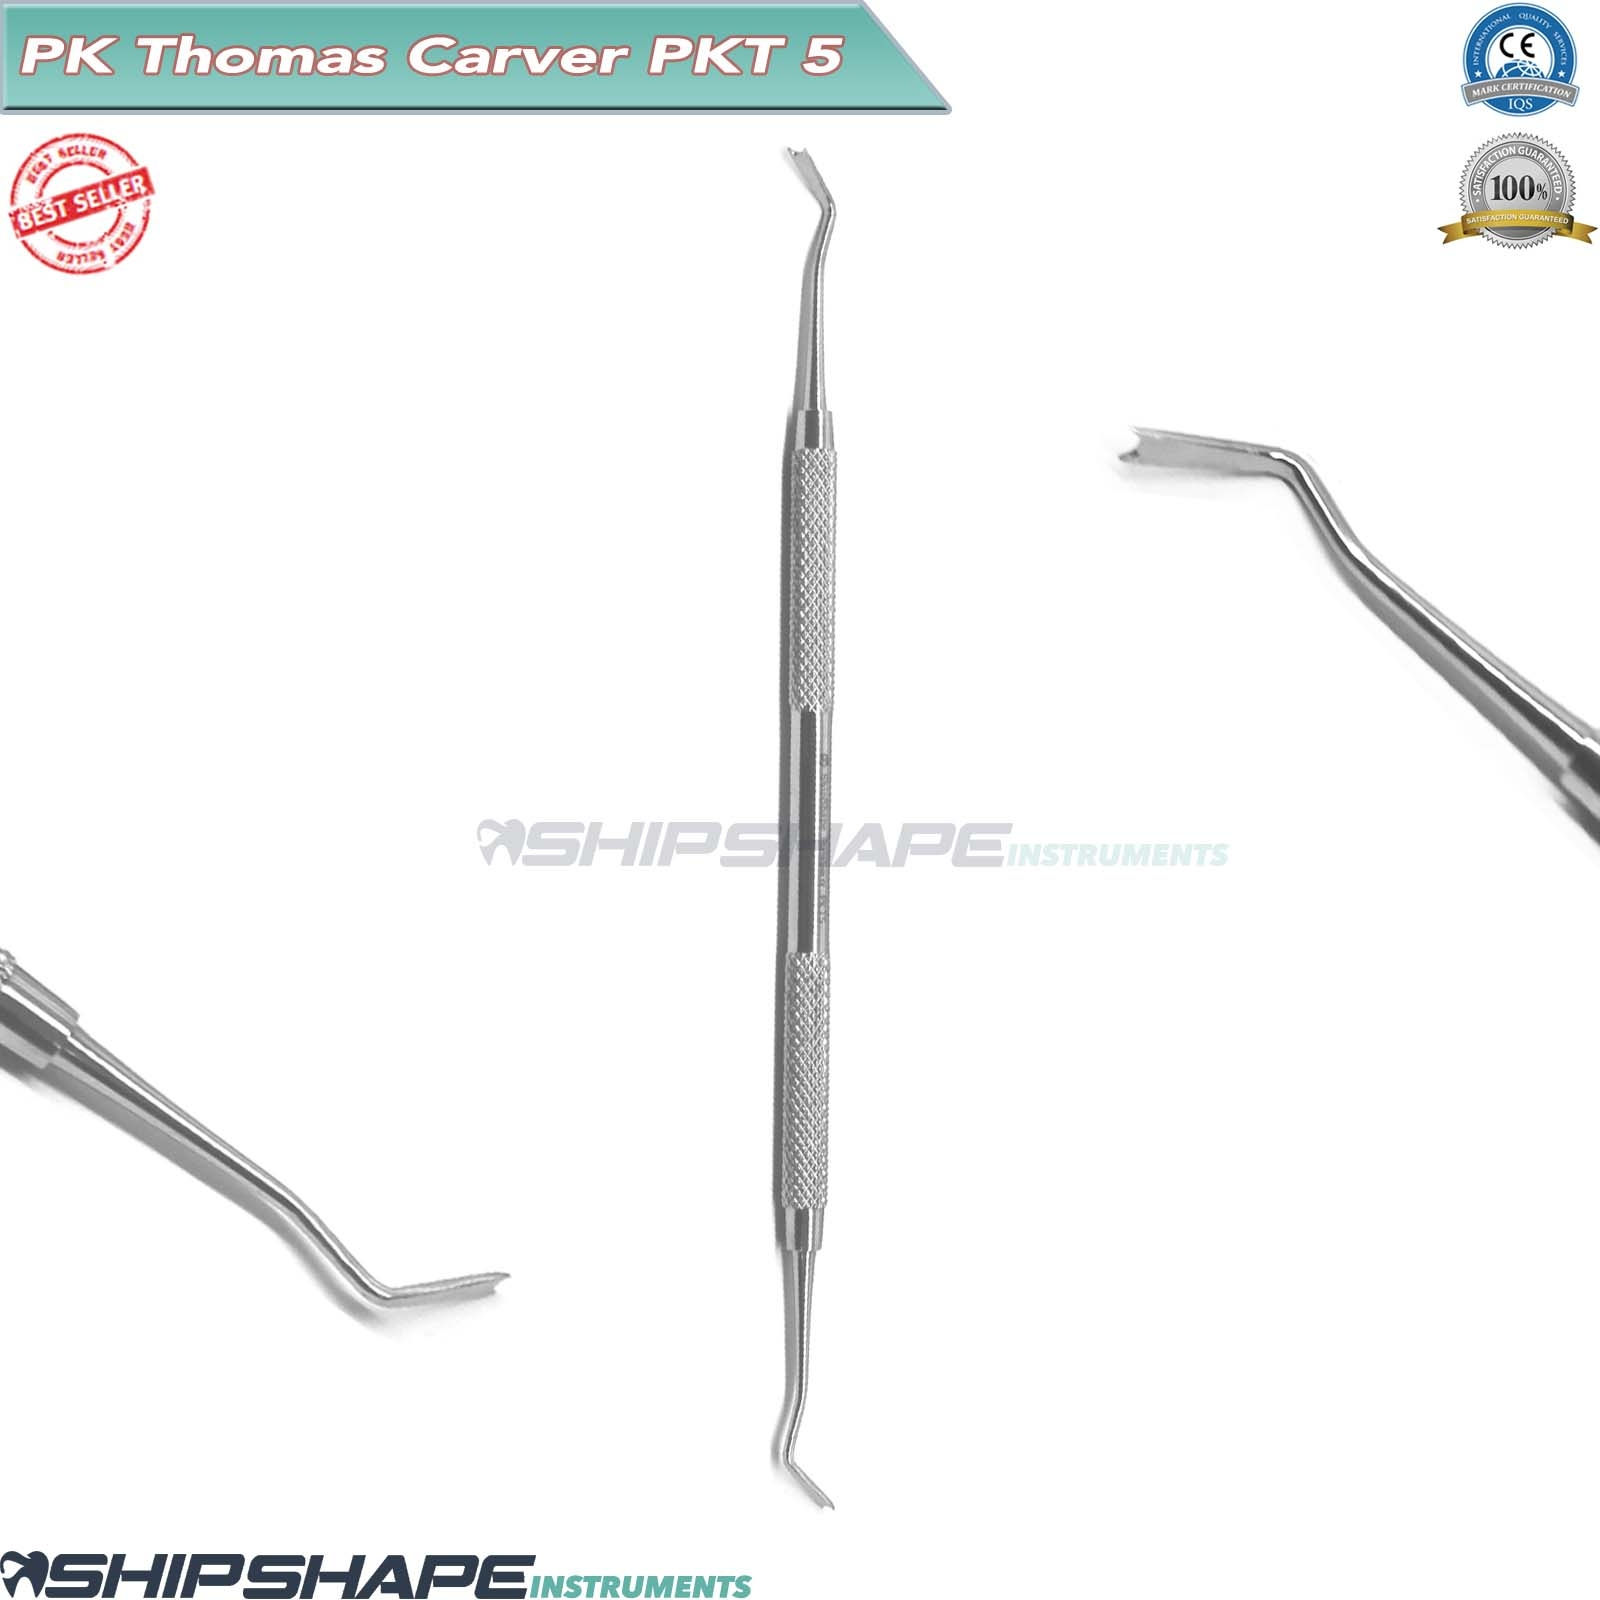 PK.THOMAS Carvers SET of 5 Stainless Steel Dental Wax and Modelling Carving Lab PKT1, PKT2, PKT3, PKT4, PKT5-2071